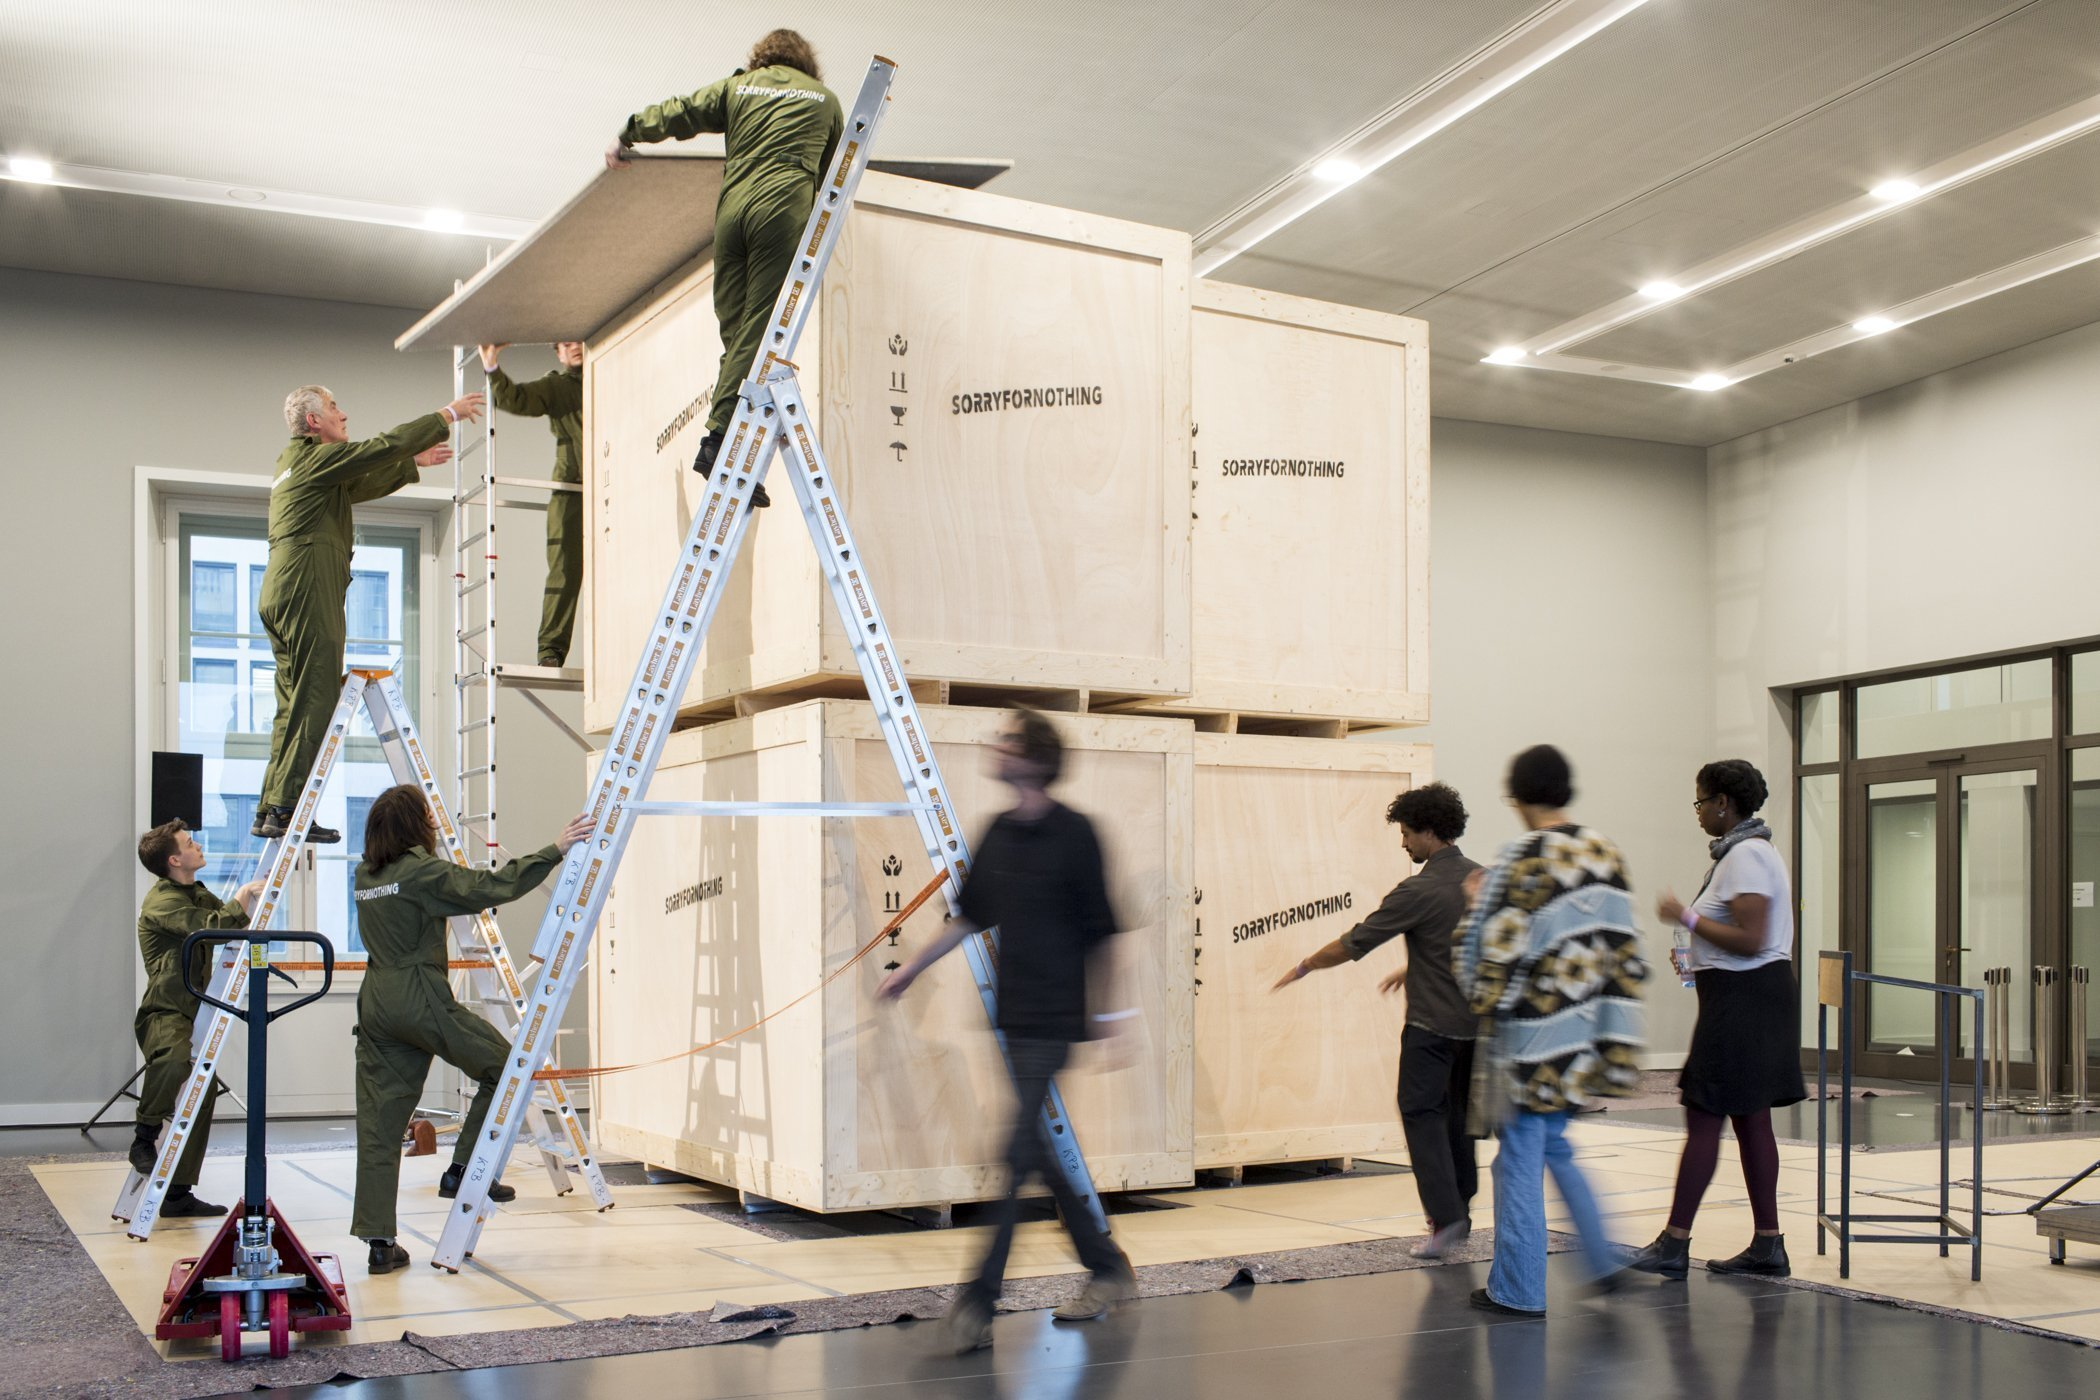 SORRYFORNOTHING sculpture by Philip Kojo Metz unveiled – second exhibit in the Berlin Exhibition at the Humboldt Forum